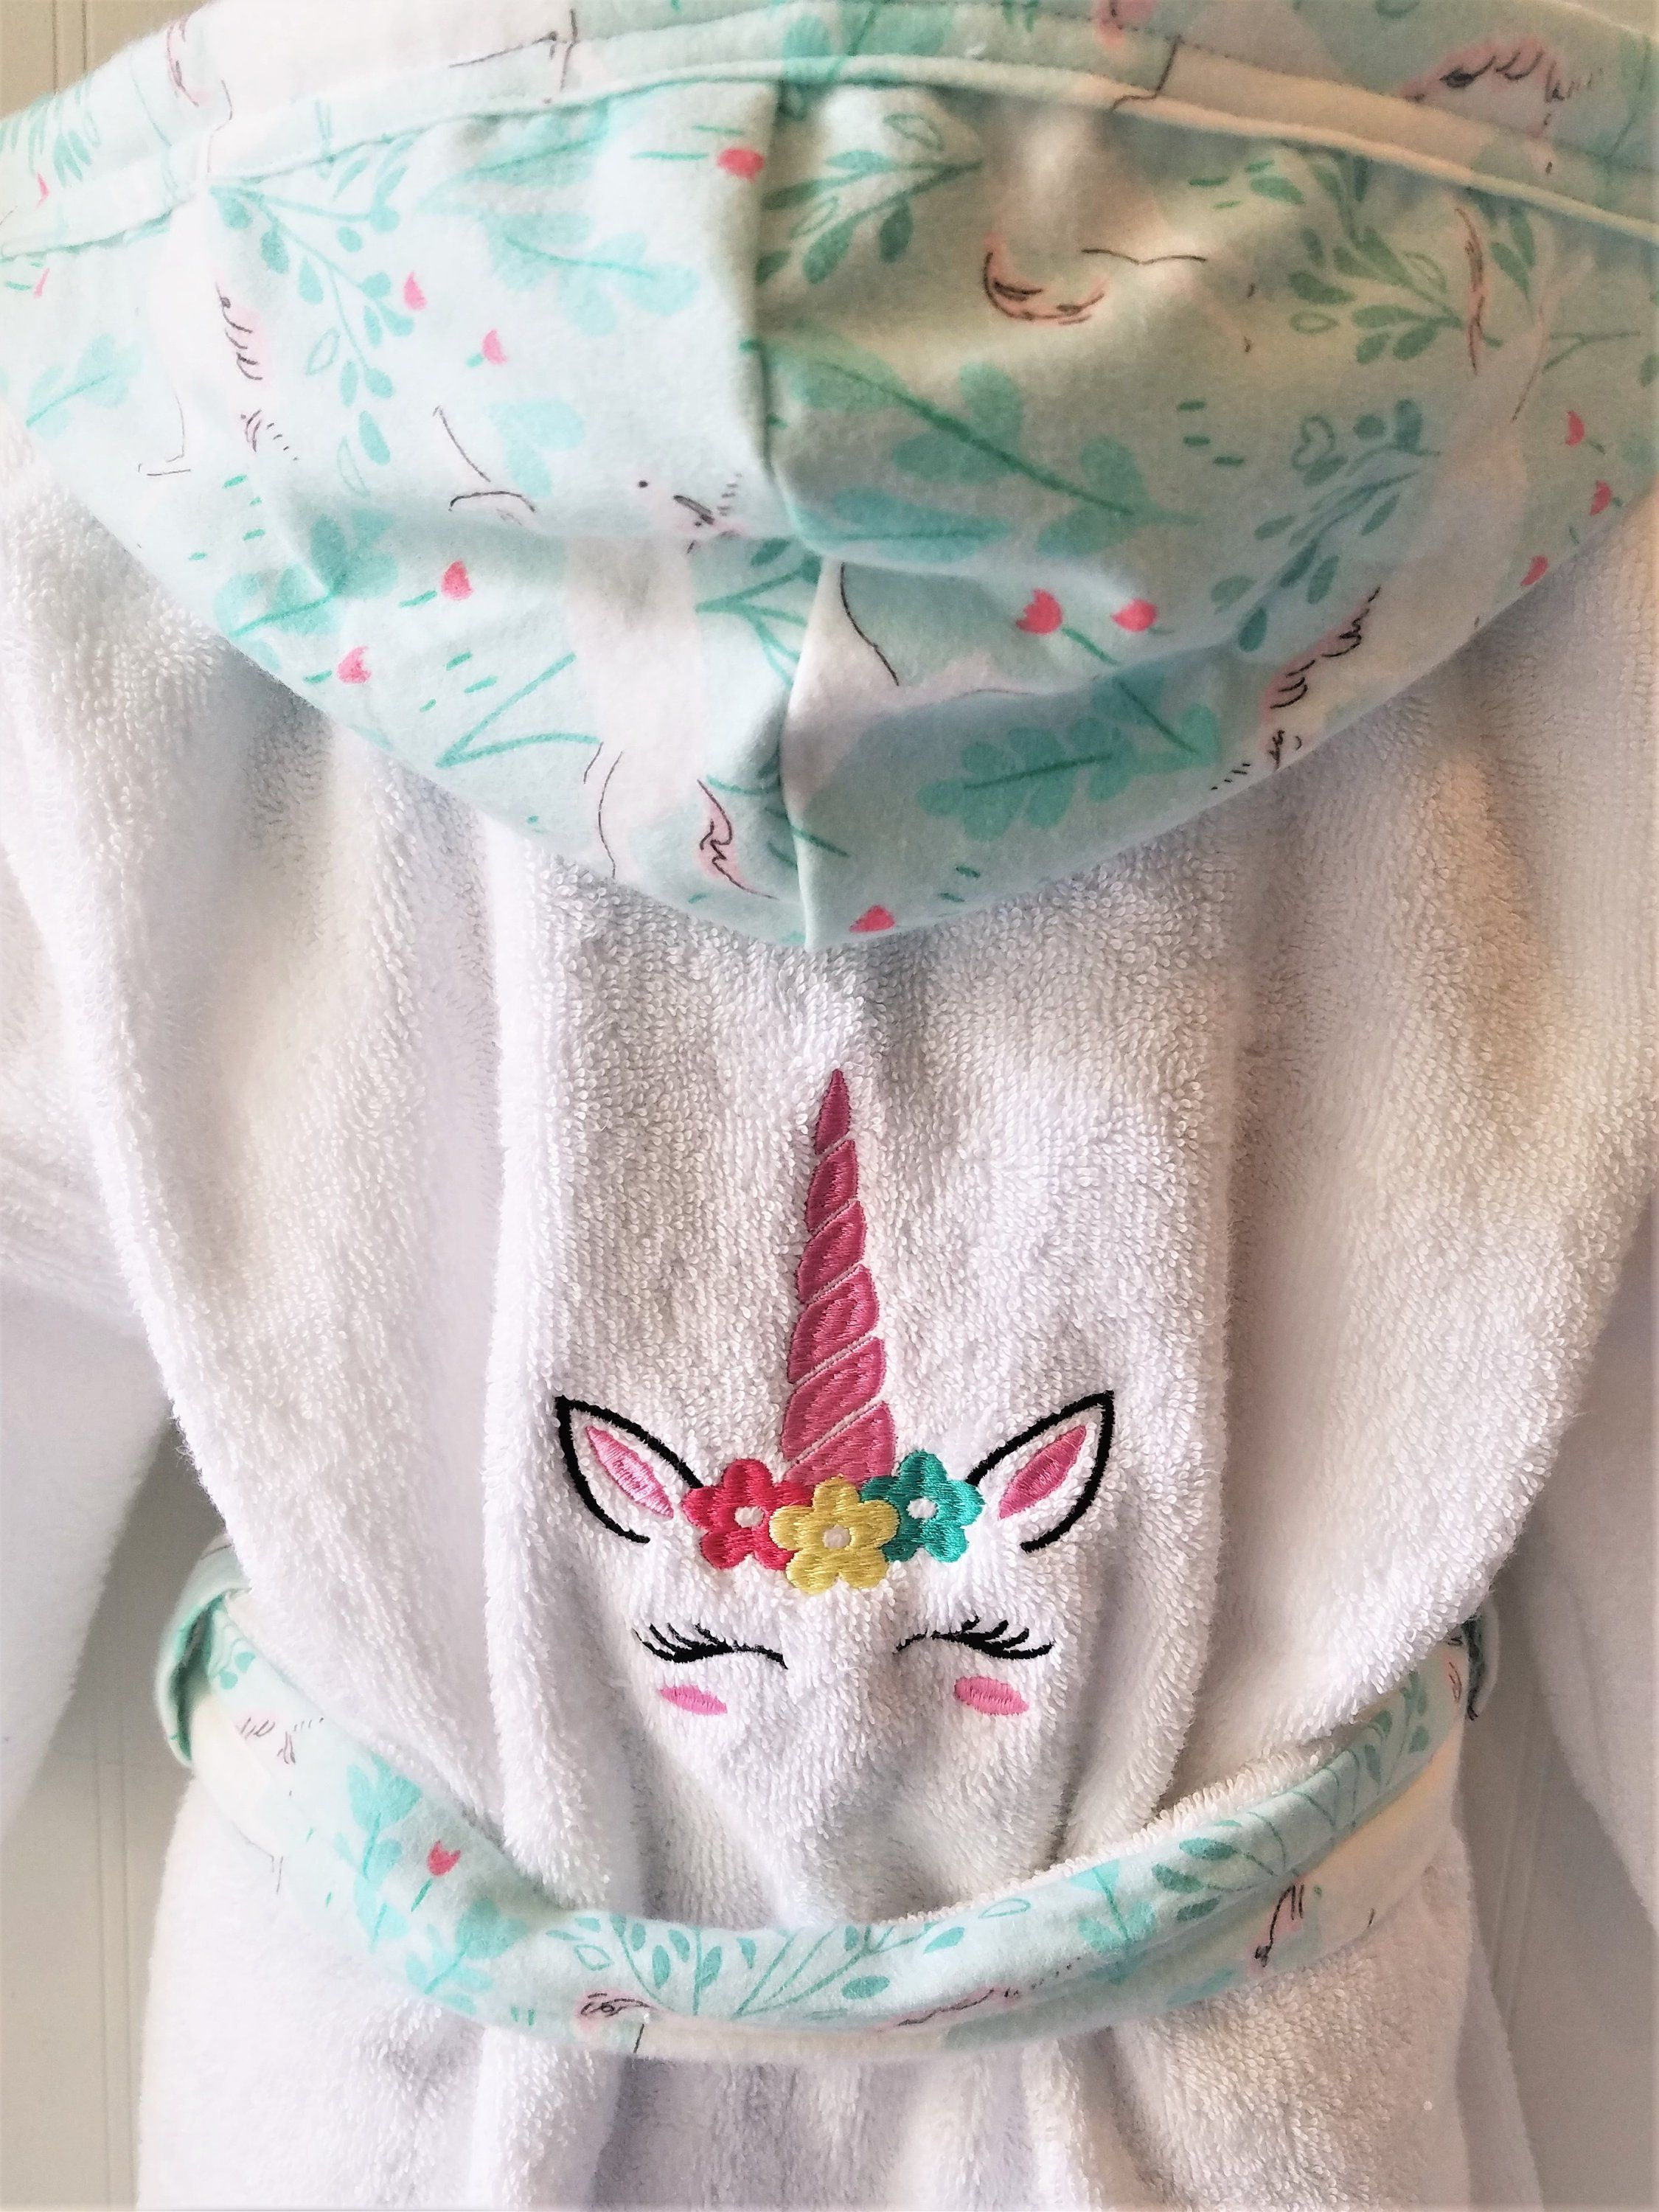 850a9cd71a1cd Personalized-Girls-Bath-Robes-Bathrobes-Pink-Unicorn -Child-Beach -Hooded-Towels-Swimwear-Terry-Beach-Cover-Up-Baby-Toddler-Kids-Teen-Gift by  tanjadlyn on ...